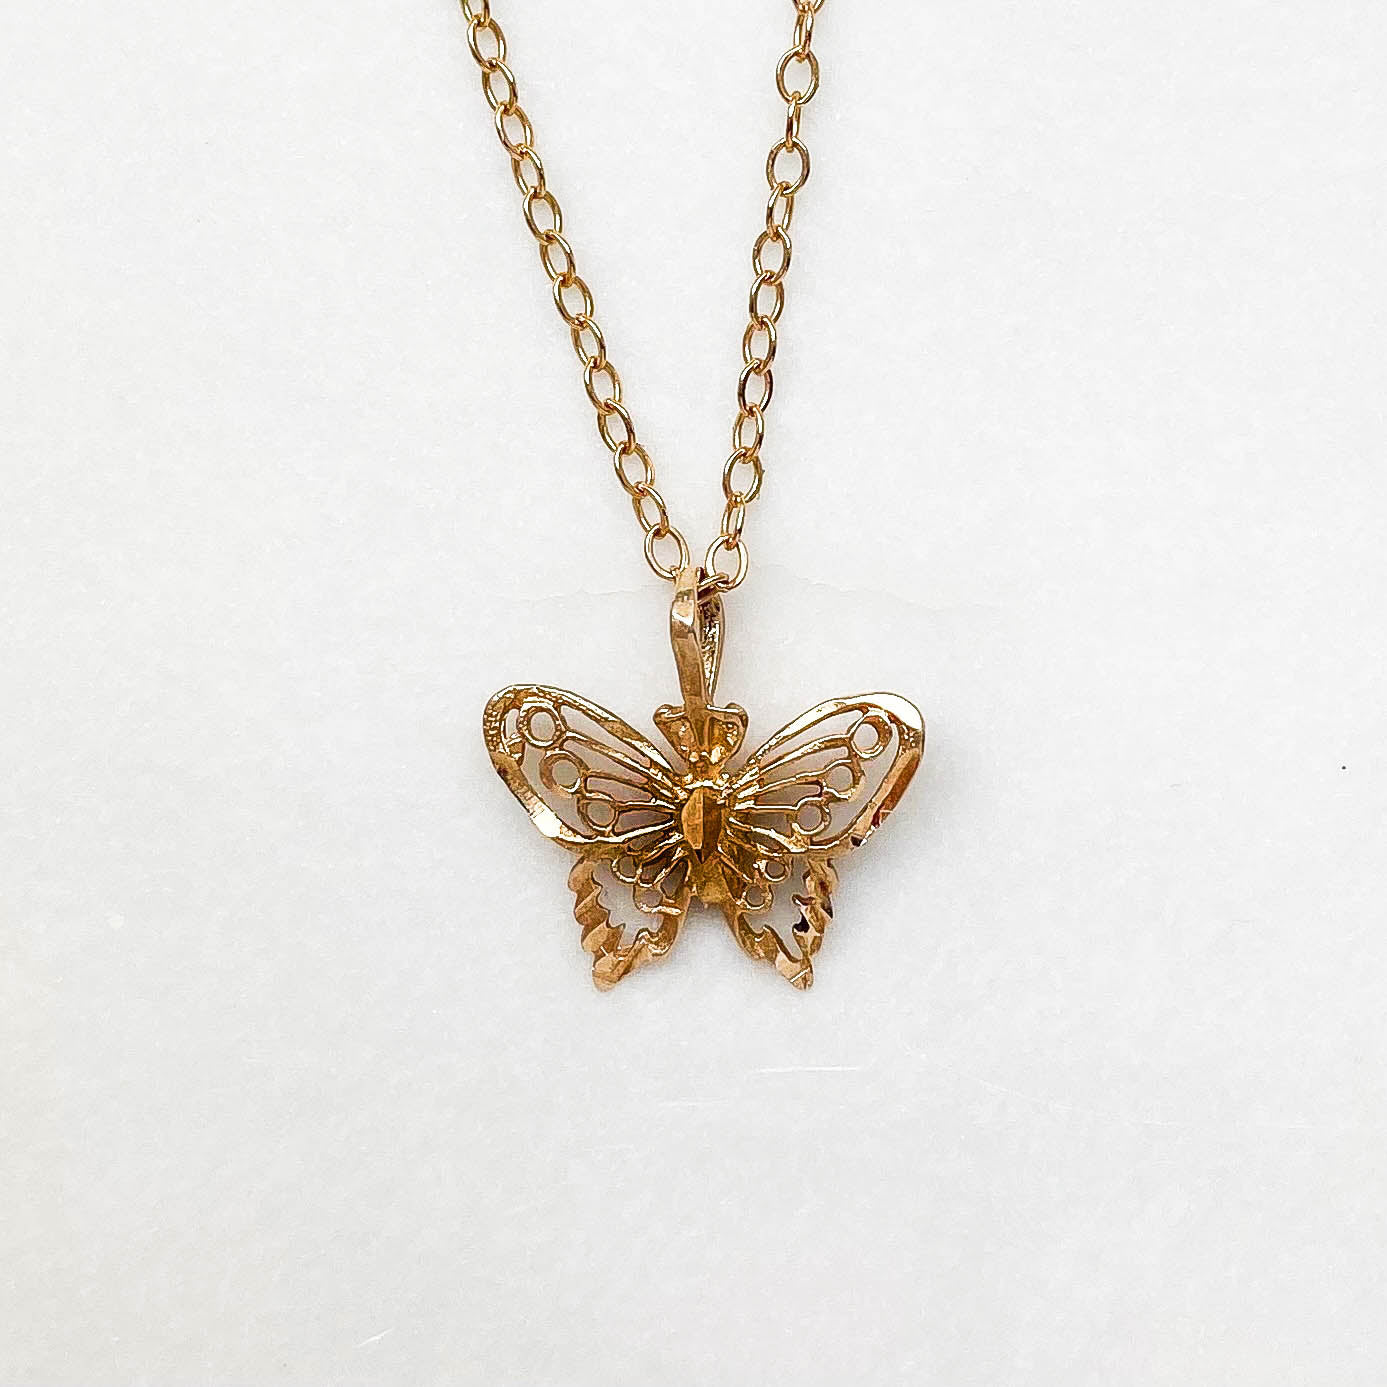 Vintage Butterfly Charm